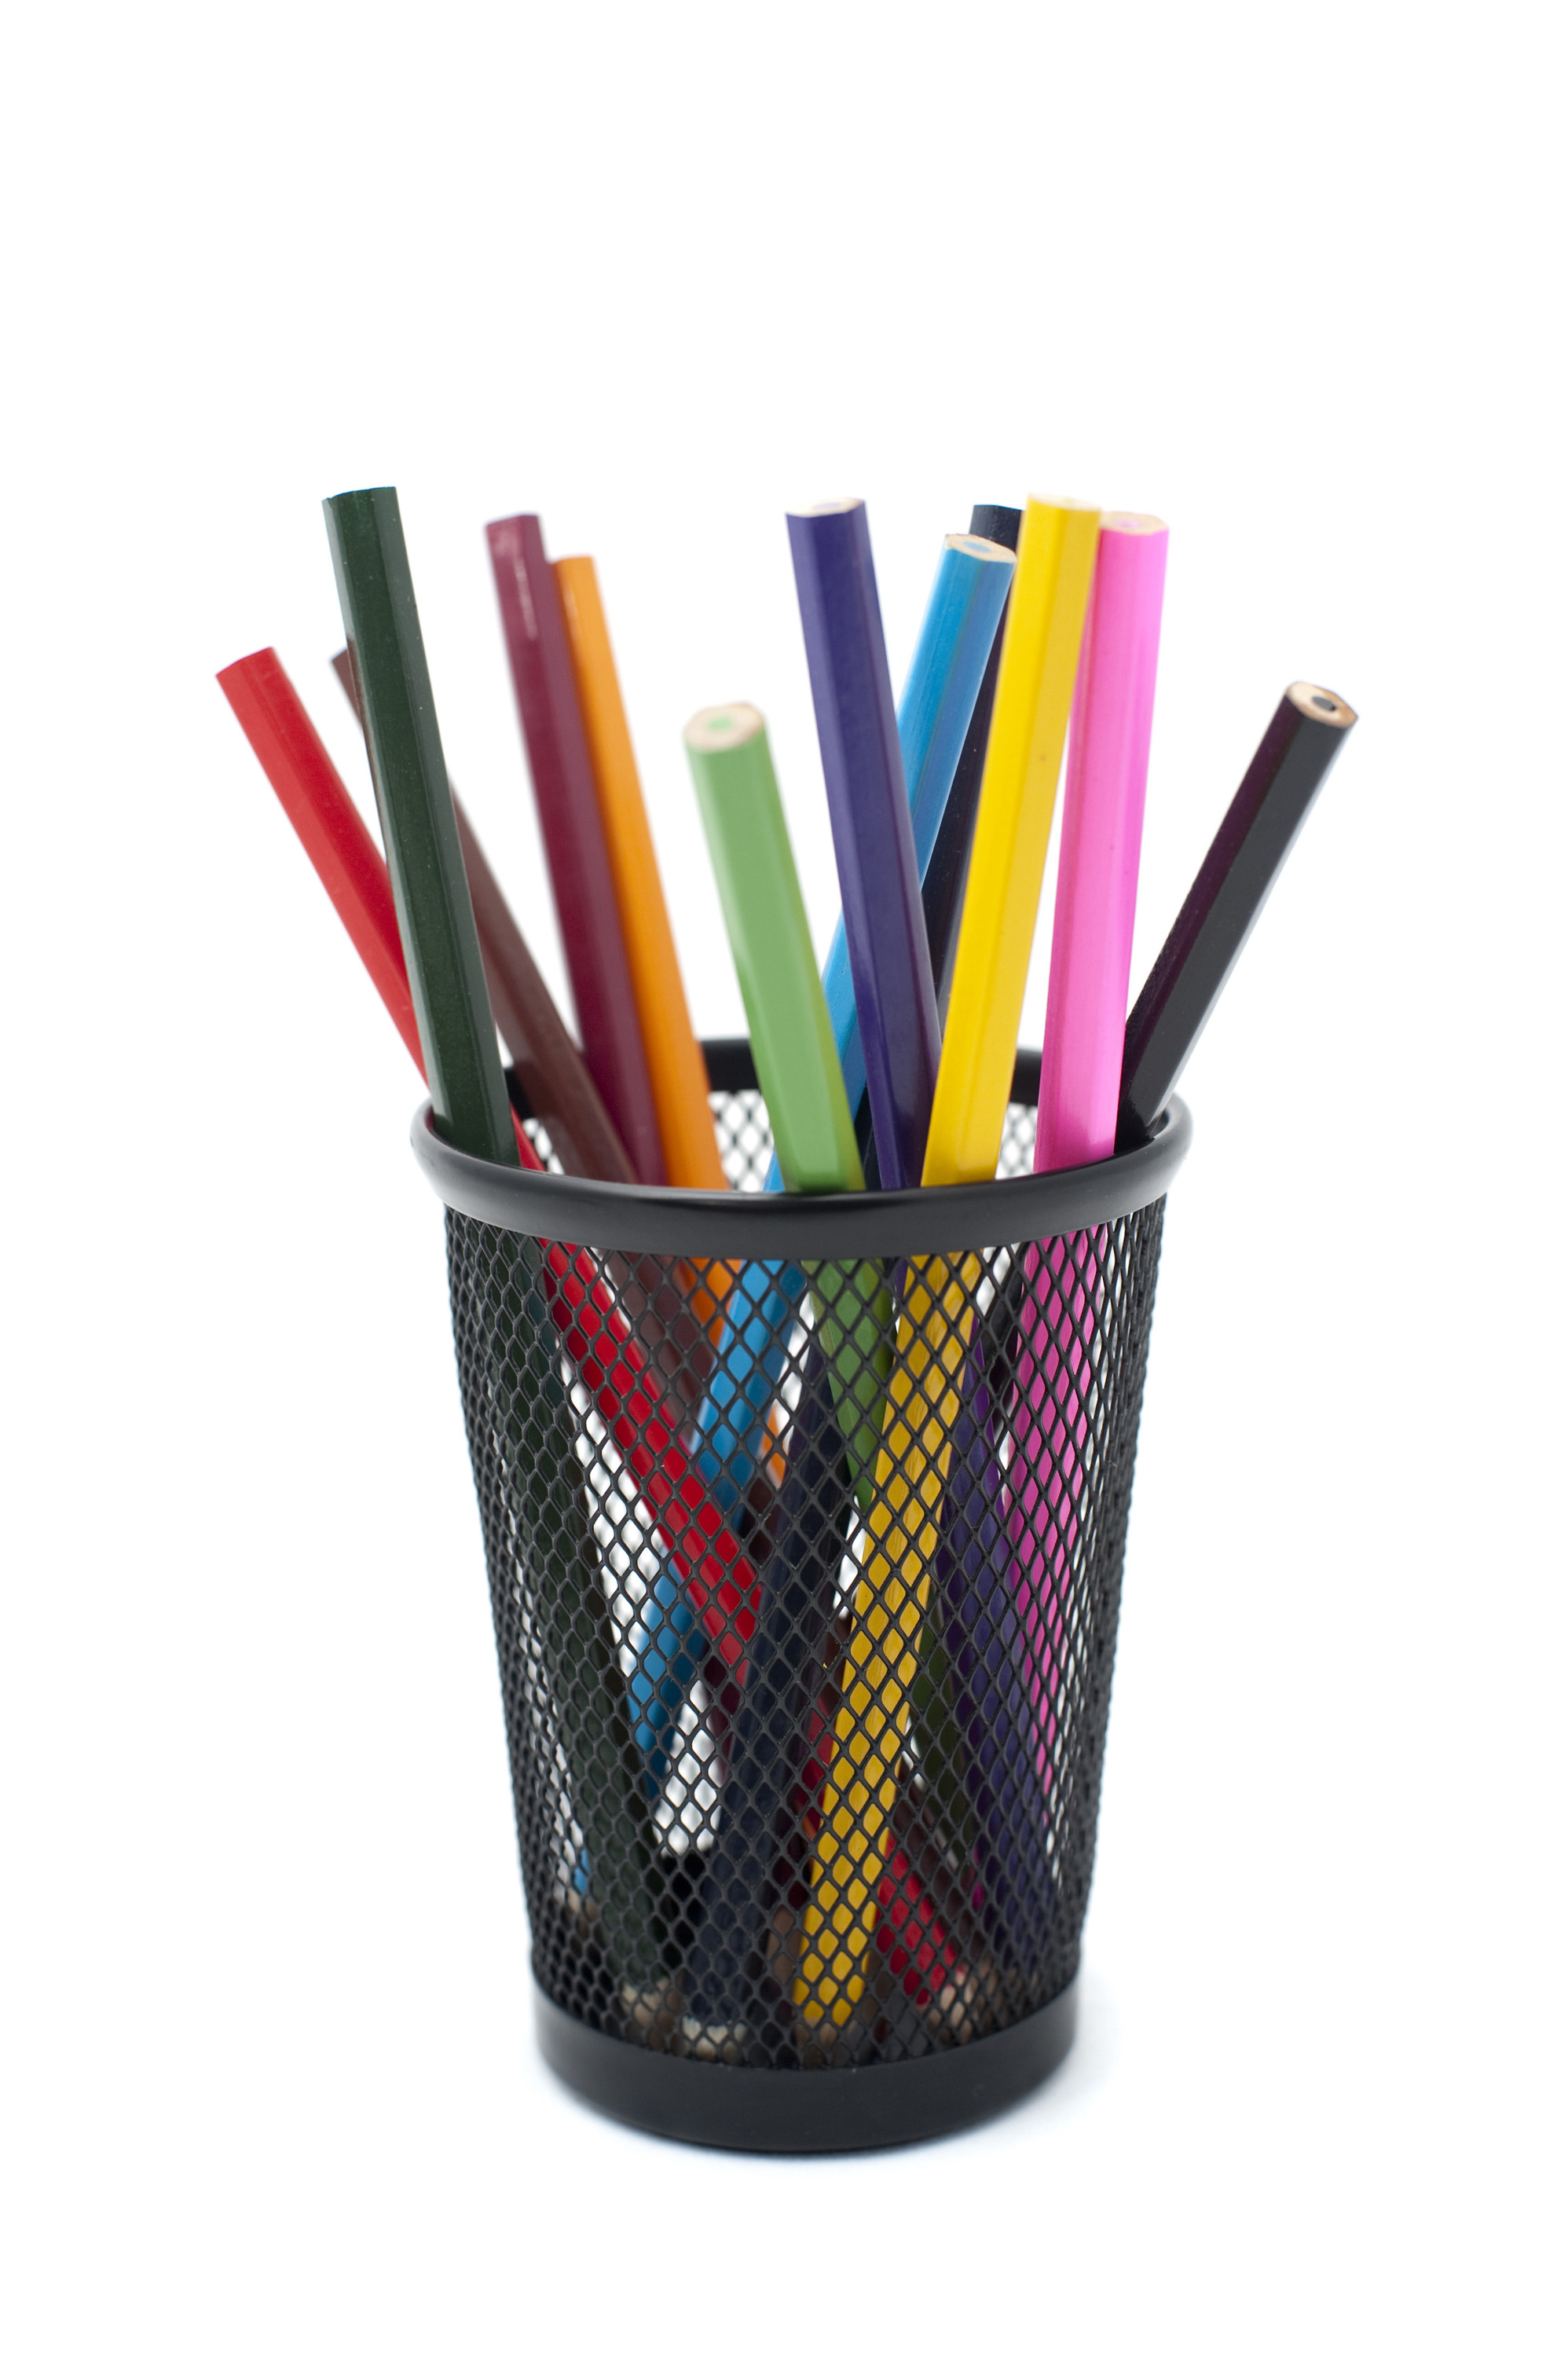 Free photo: Colored Pencils, Wooden Pencils - Free Image on ...